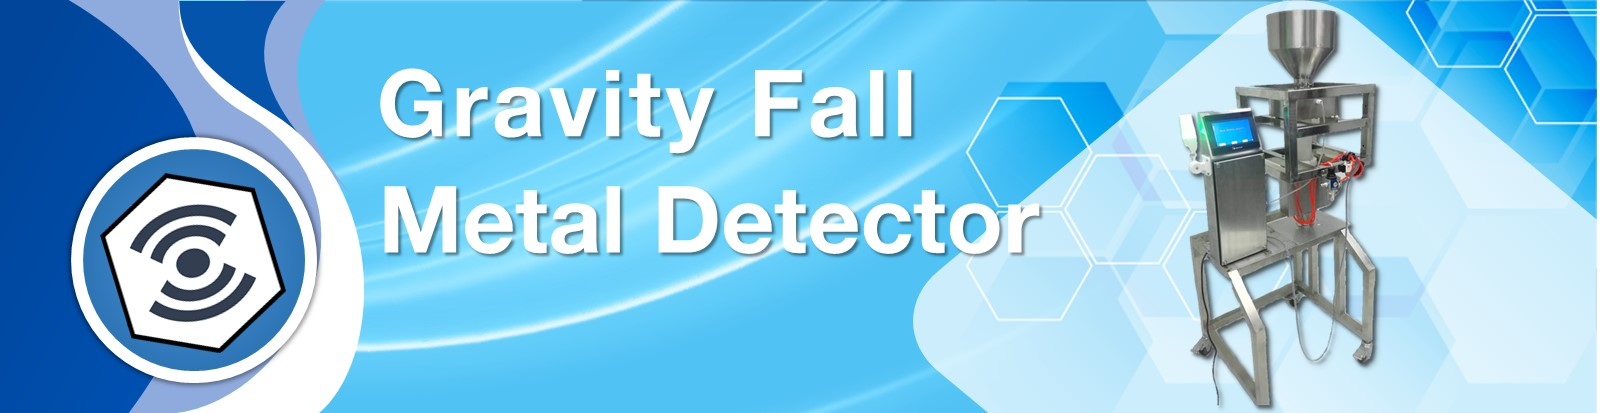 Gravity Fall Metal Detector